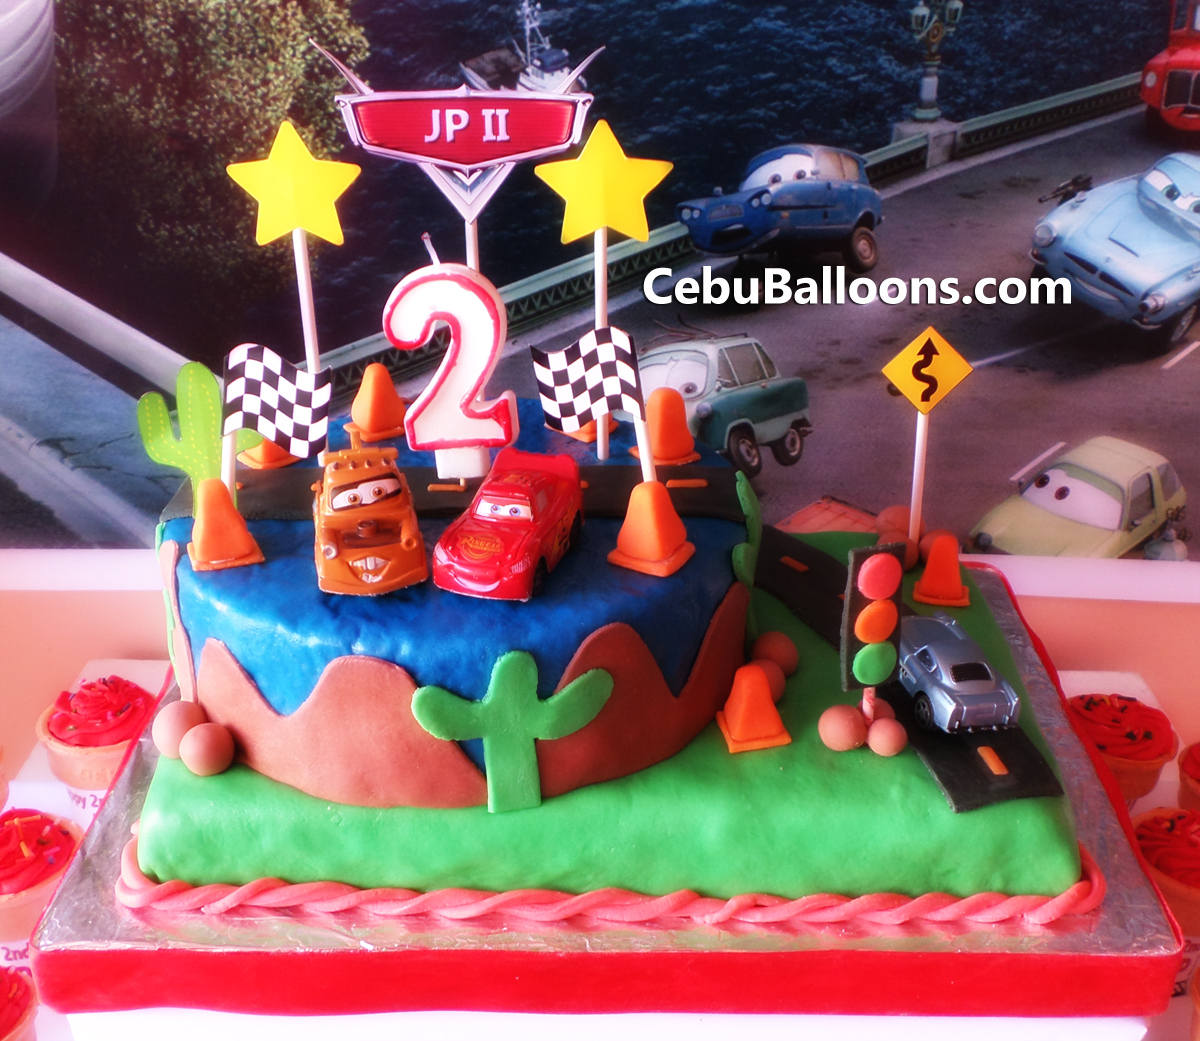 Cars Theme Cake For Jp Ii S 2nd Birthday Cebu Balloons And Party